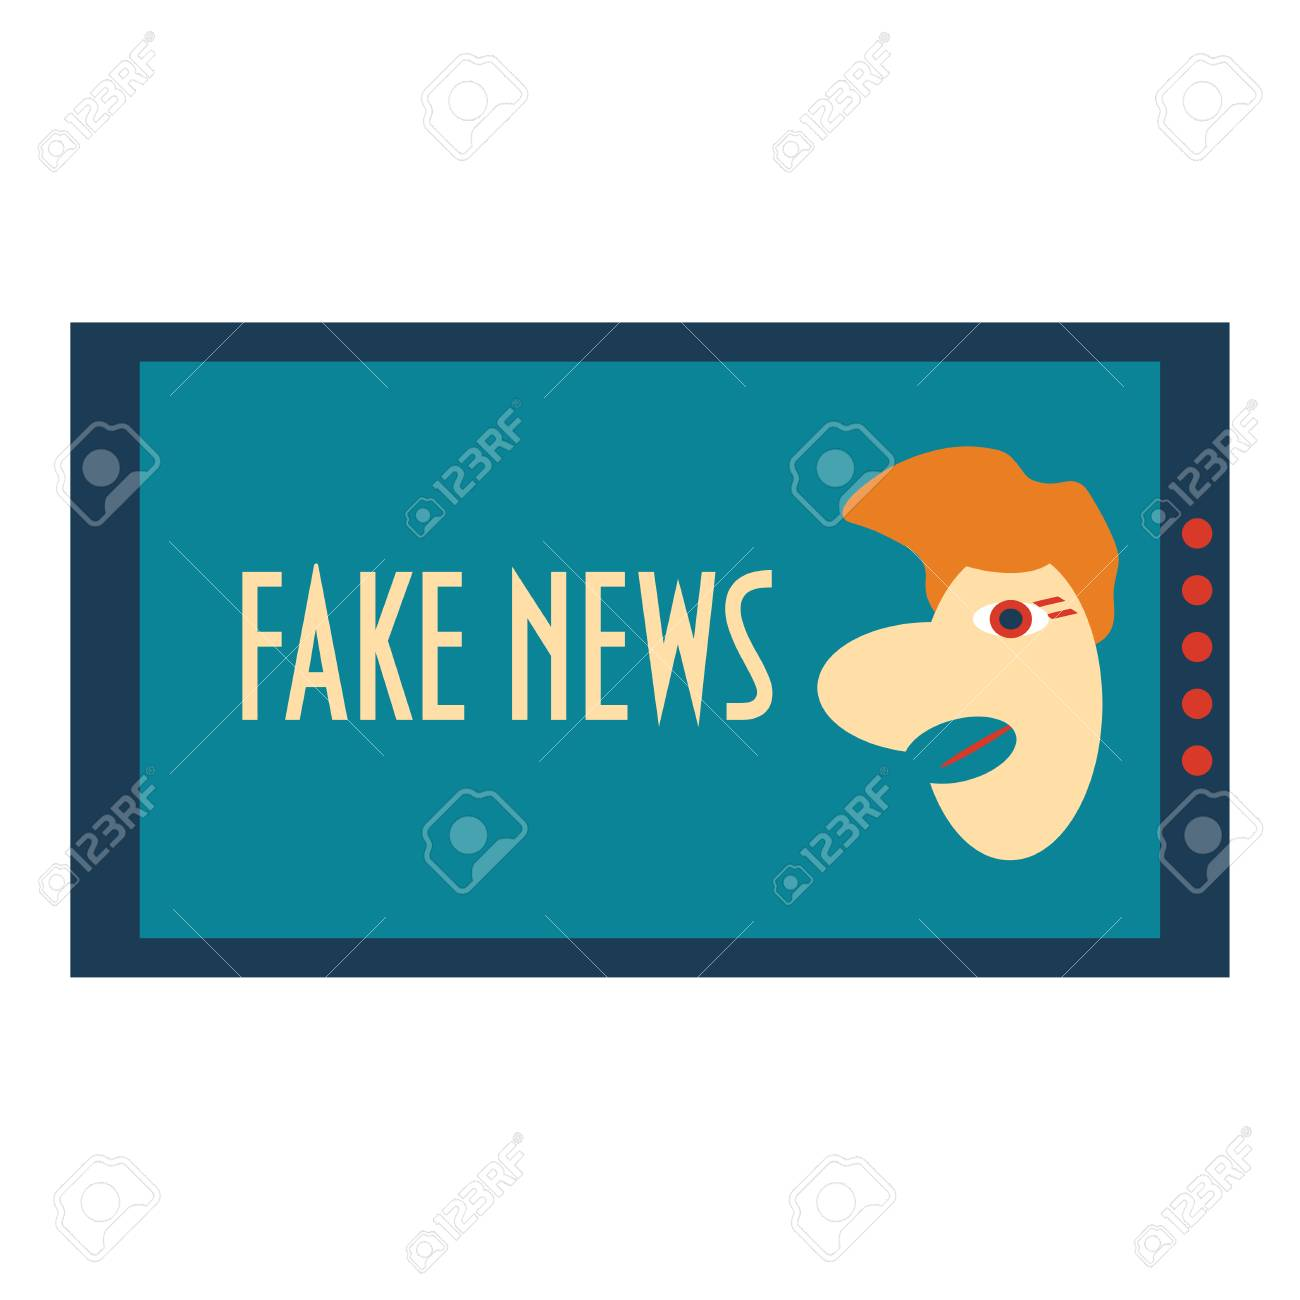 Fake News Concept Corrupt Hoax Media Satire Vector Illustration